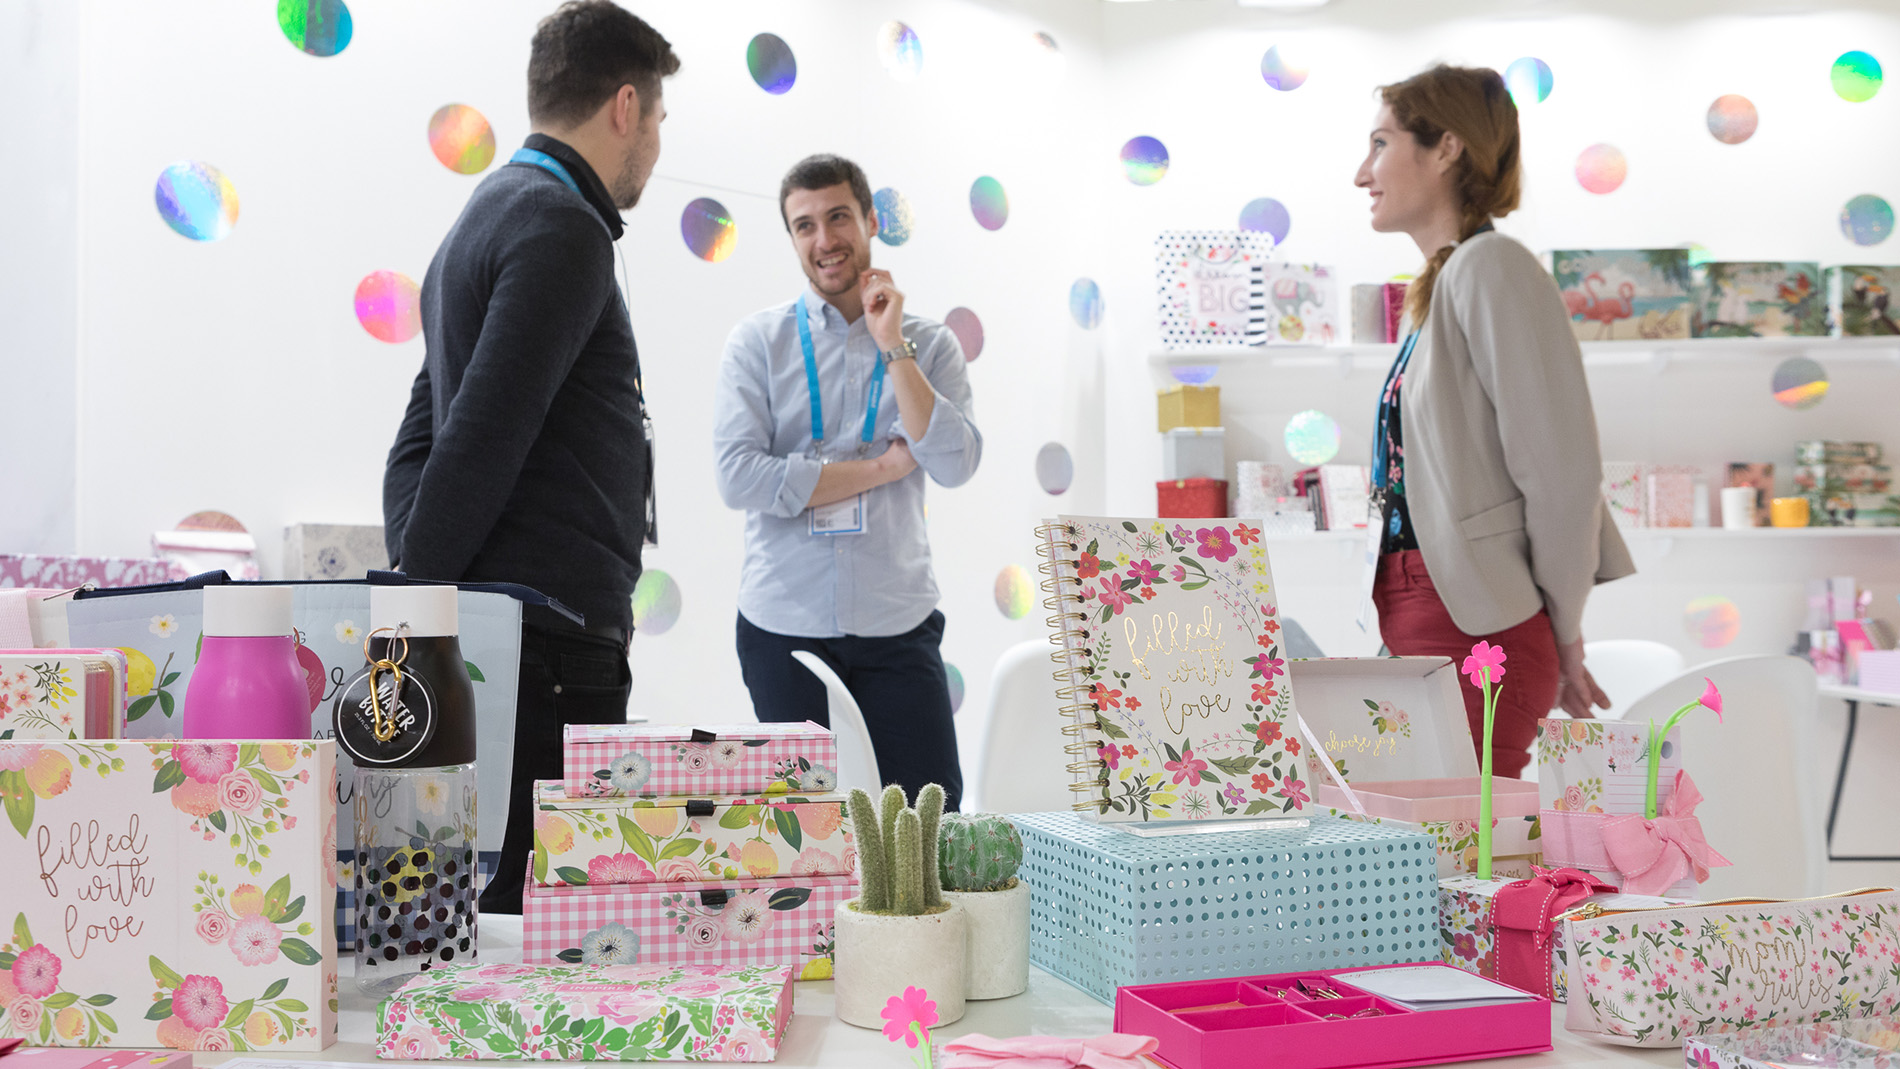 Business talk at a booth for gift items and packaging at Paperworld